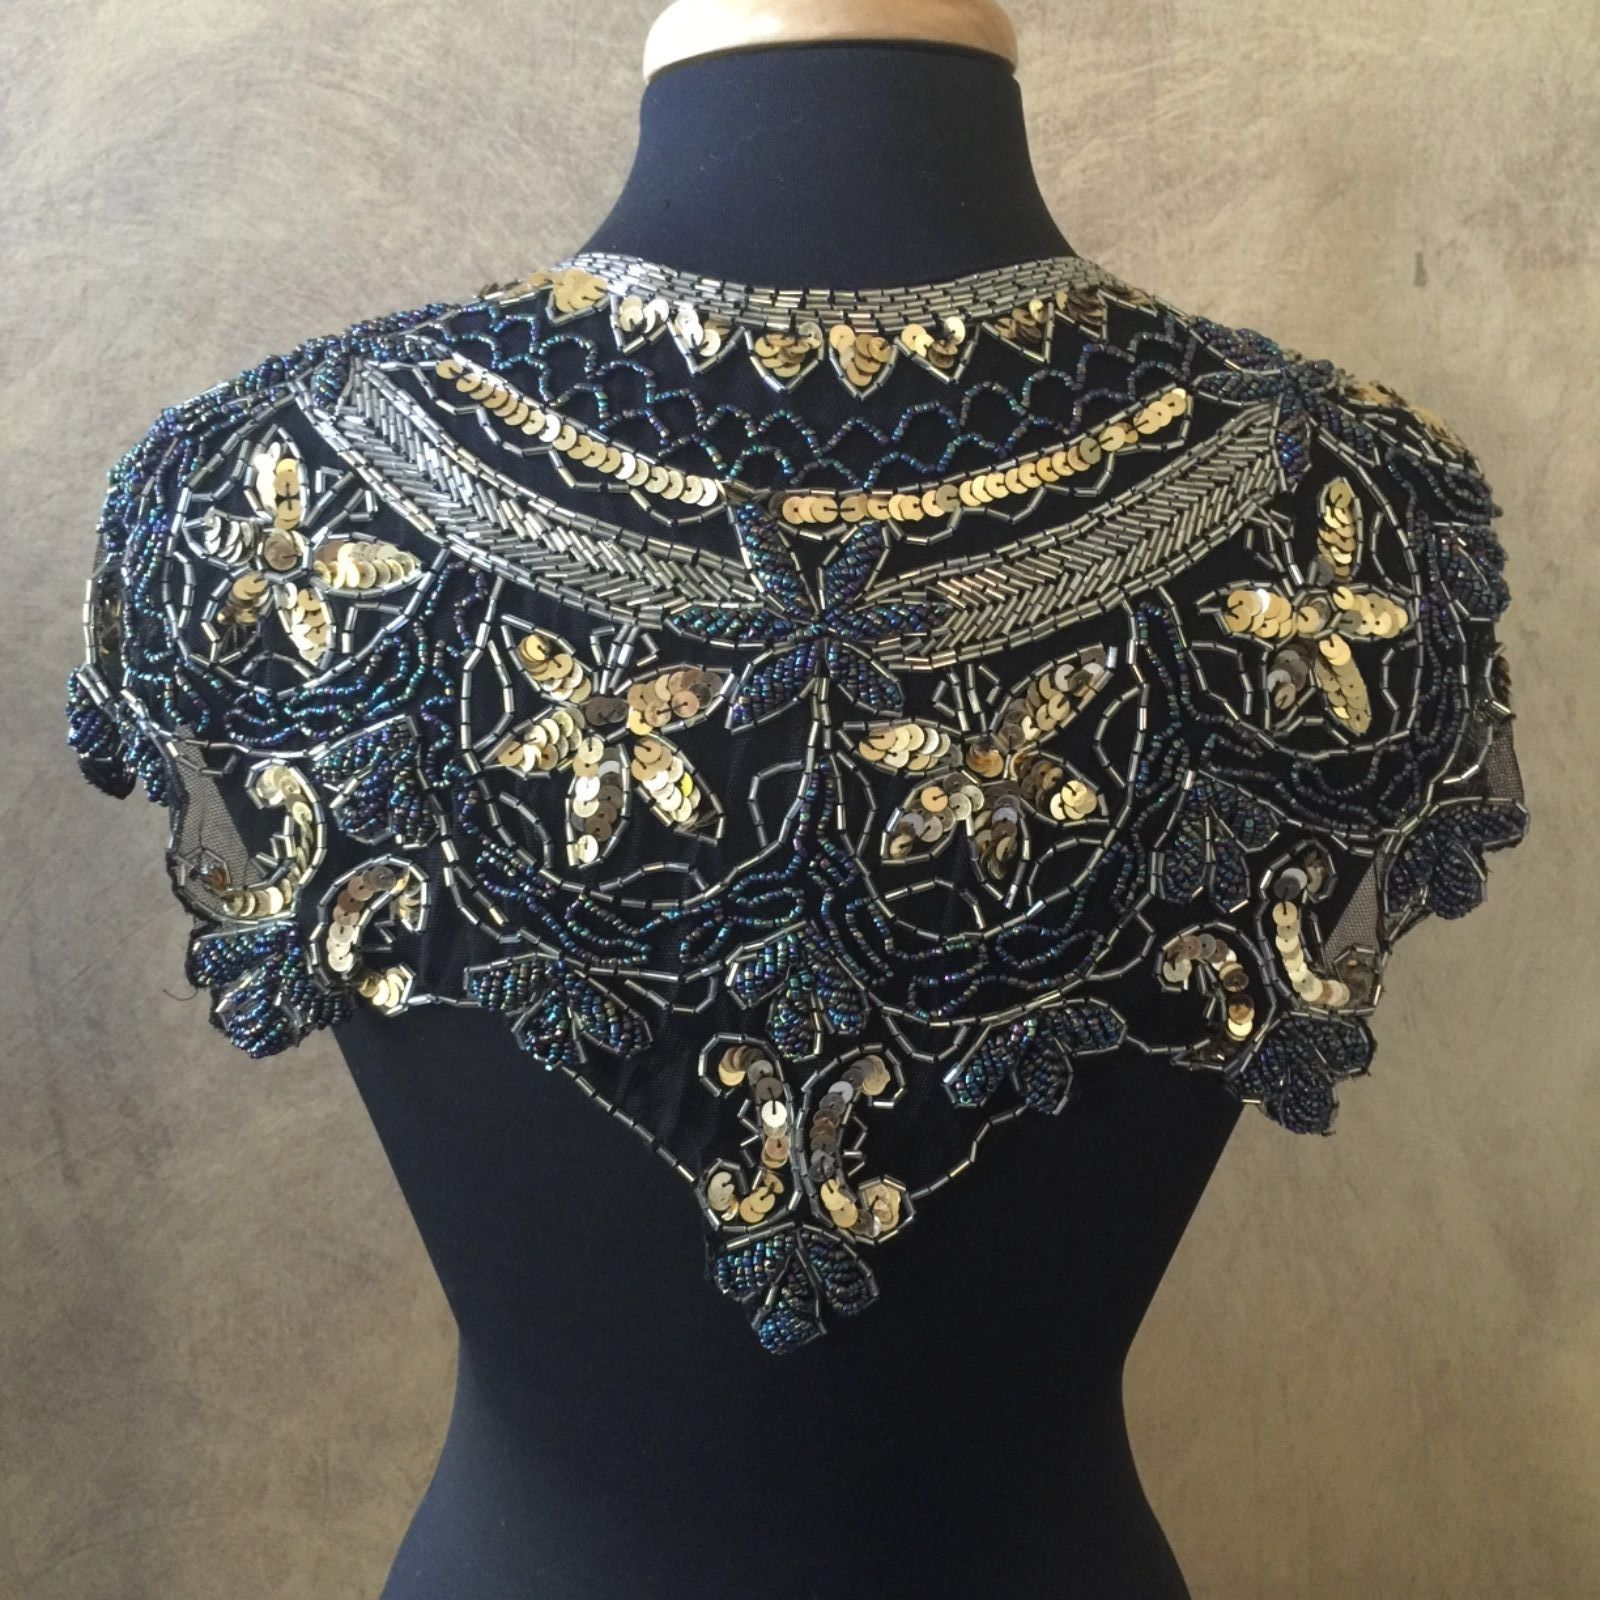 Primary image for Sequin Beaded Lace Hip Wrap Collar Shoulder Shrug Shawl Applique Peacock Gold